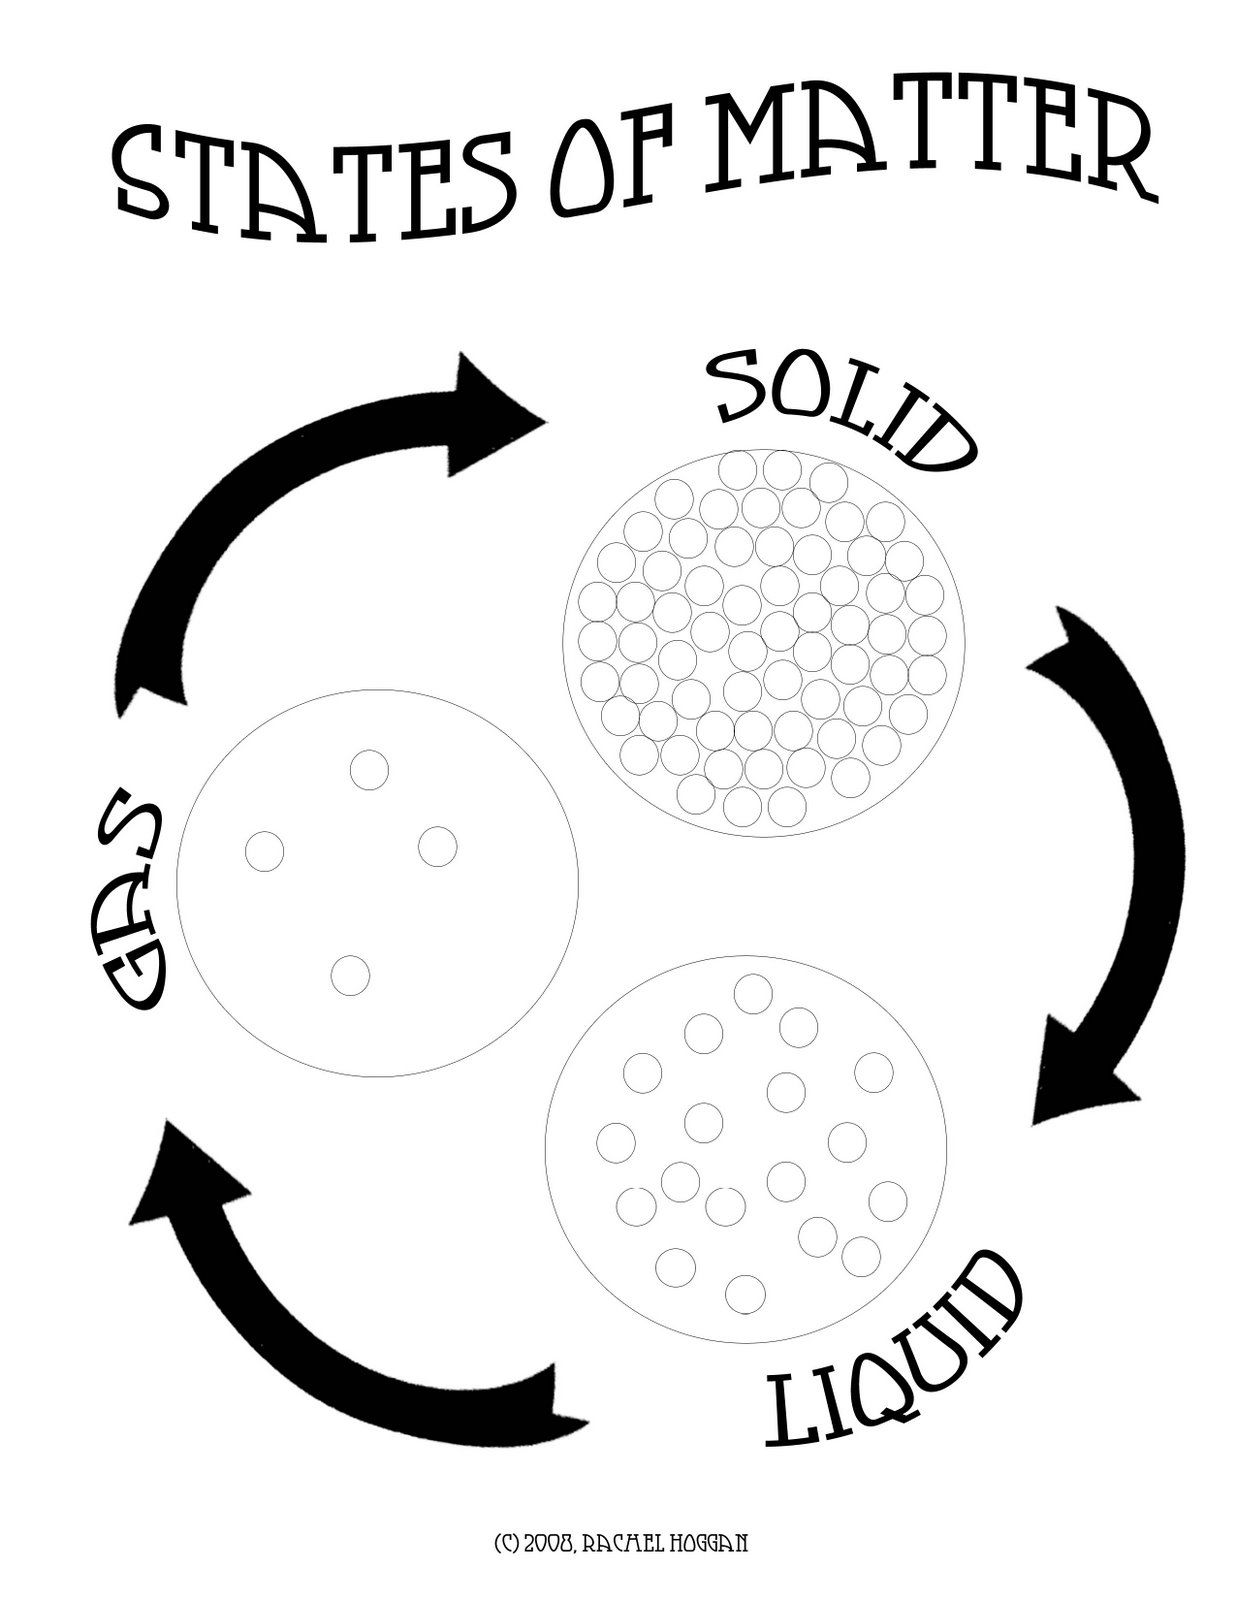 States Of Matter Solids Liquids Gas Printable Sketch